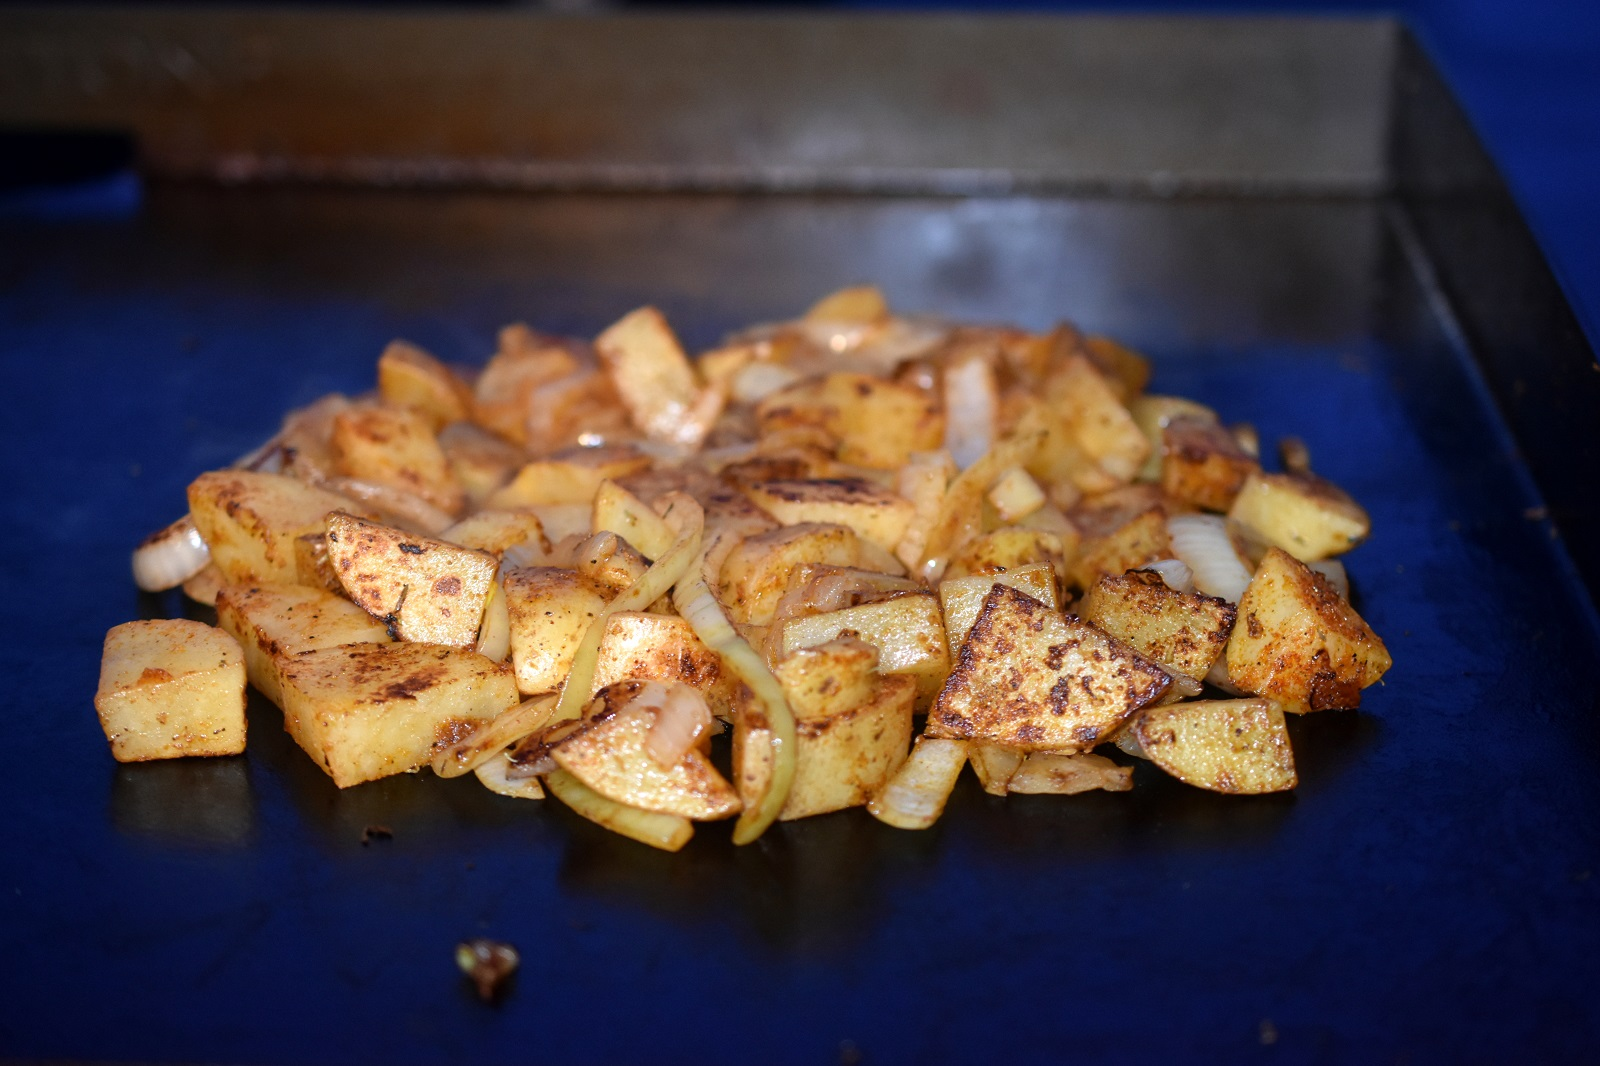 Potatoes cooked on Blackstone Griddle with Homemade Steak Seasoning